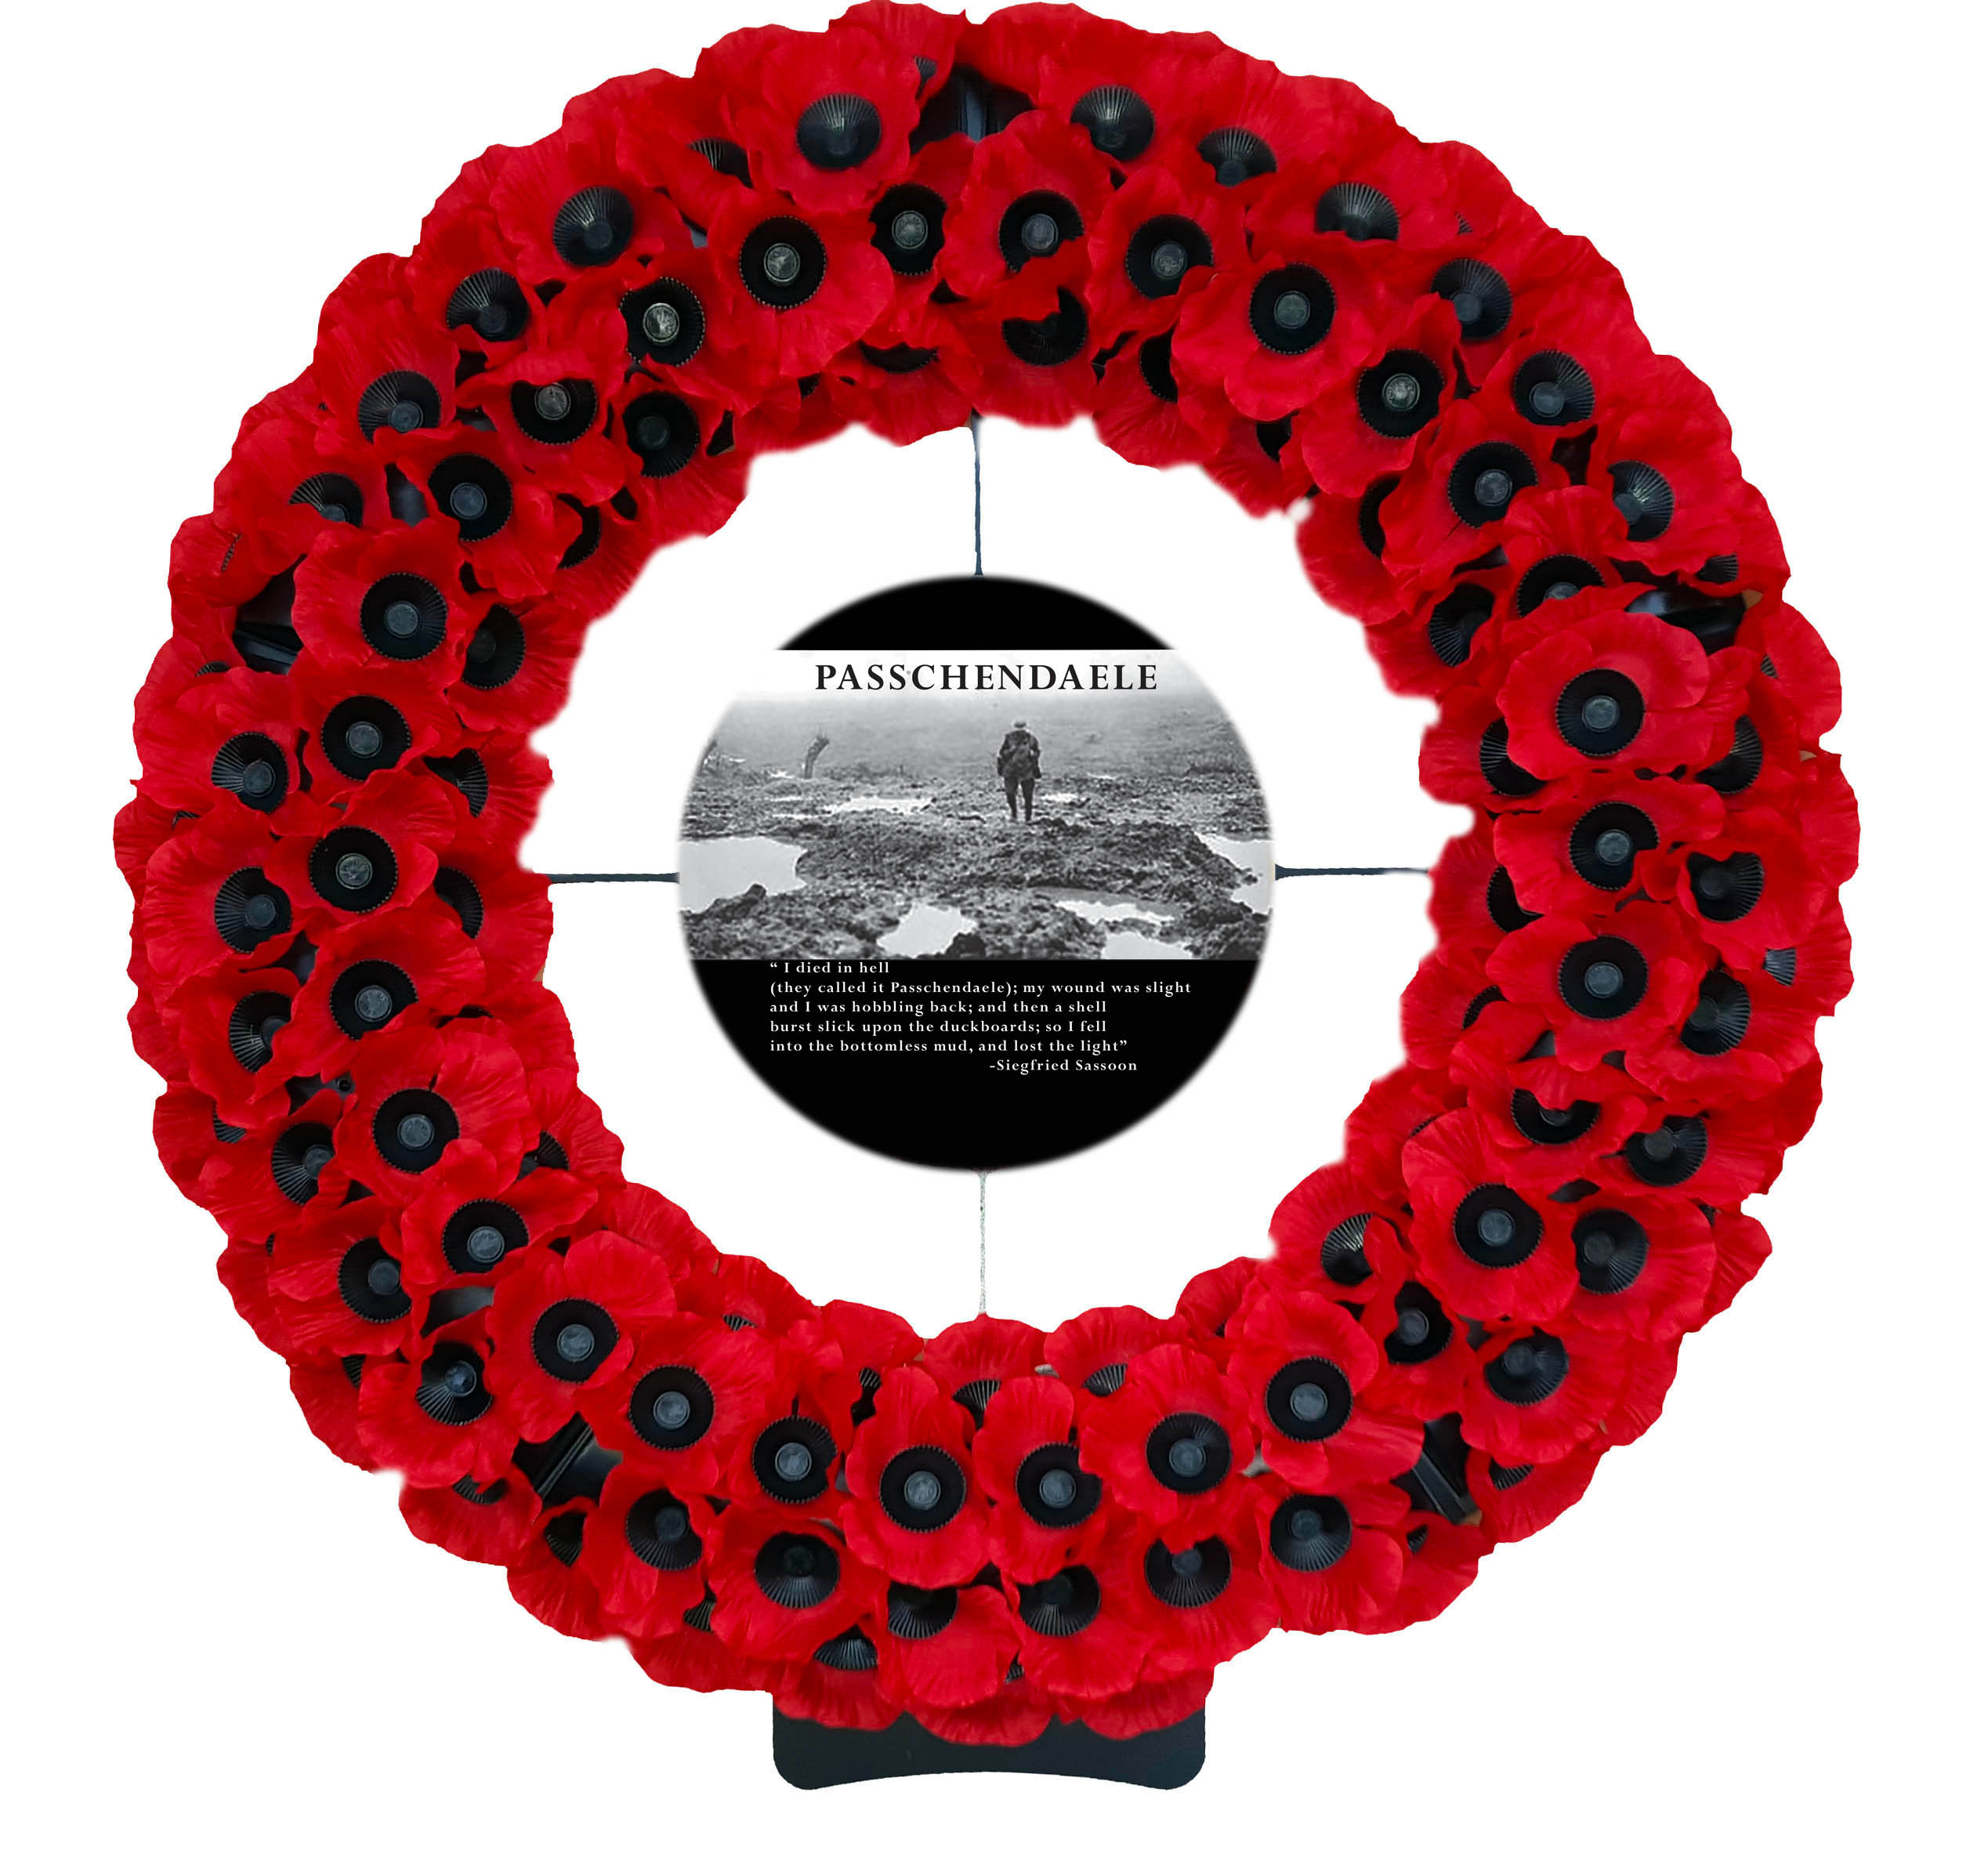 The largest wreath available from Lady Haig's Poppy Factory W8 Showing the Passchendaele Logo